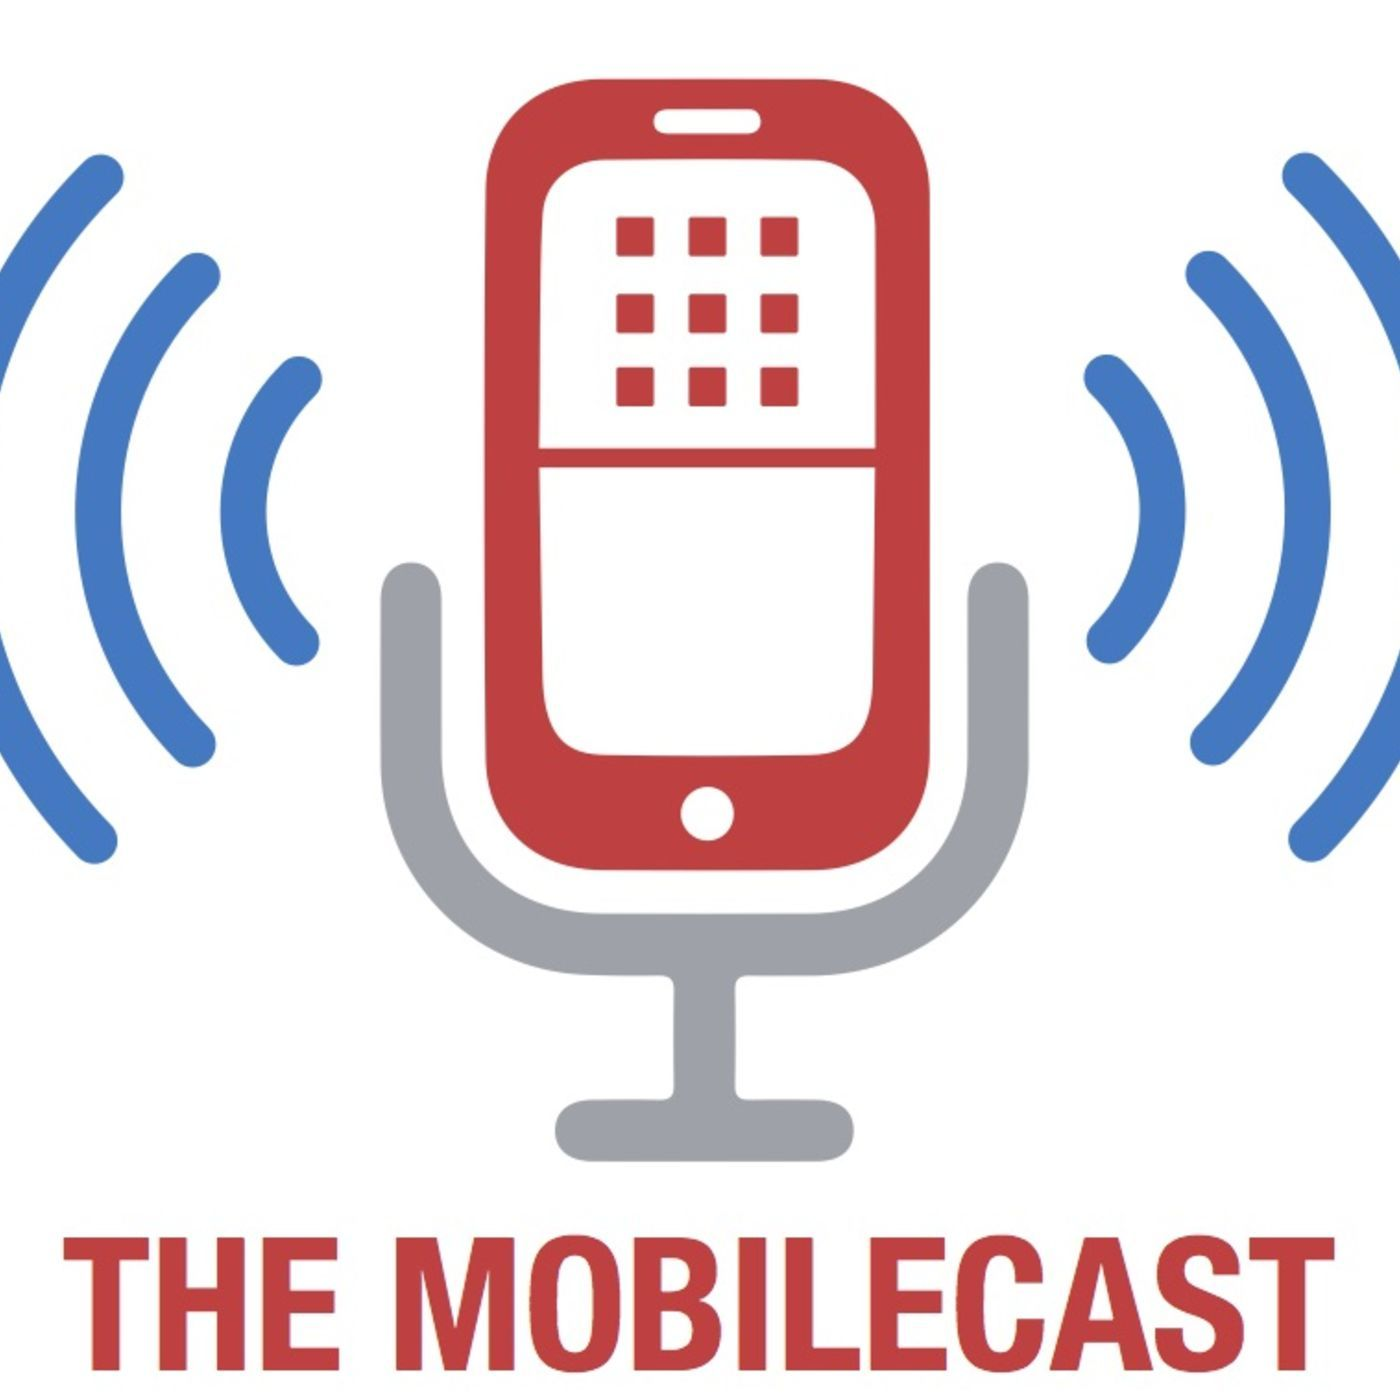 The Mobilecast #304 – S3 Ep 04 MWC 2016 Day 2 Recap with Nick McQuire.mp3